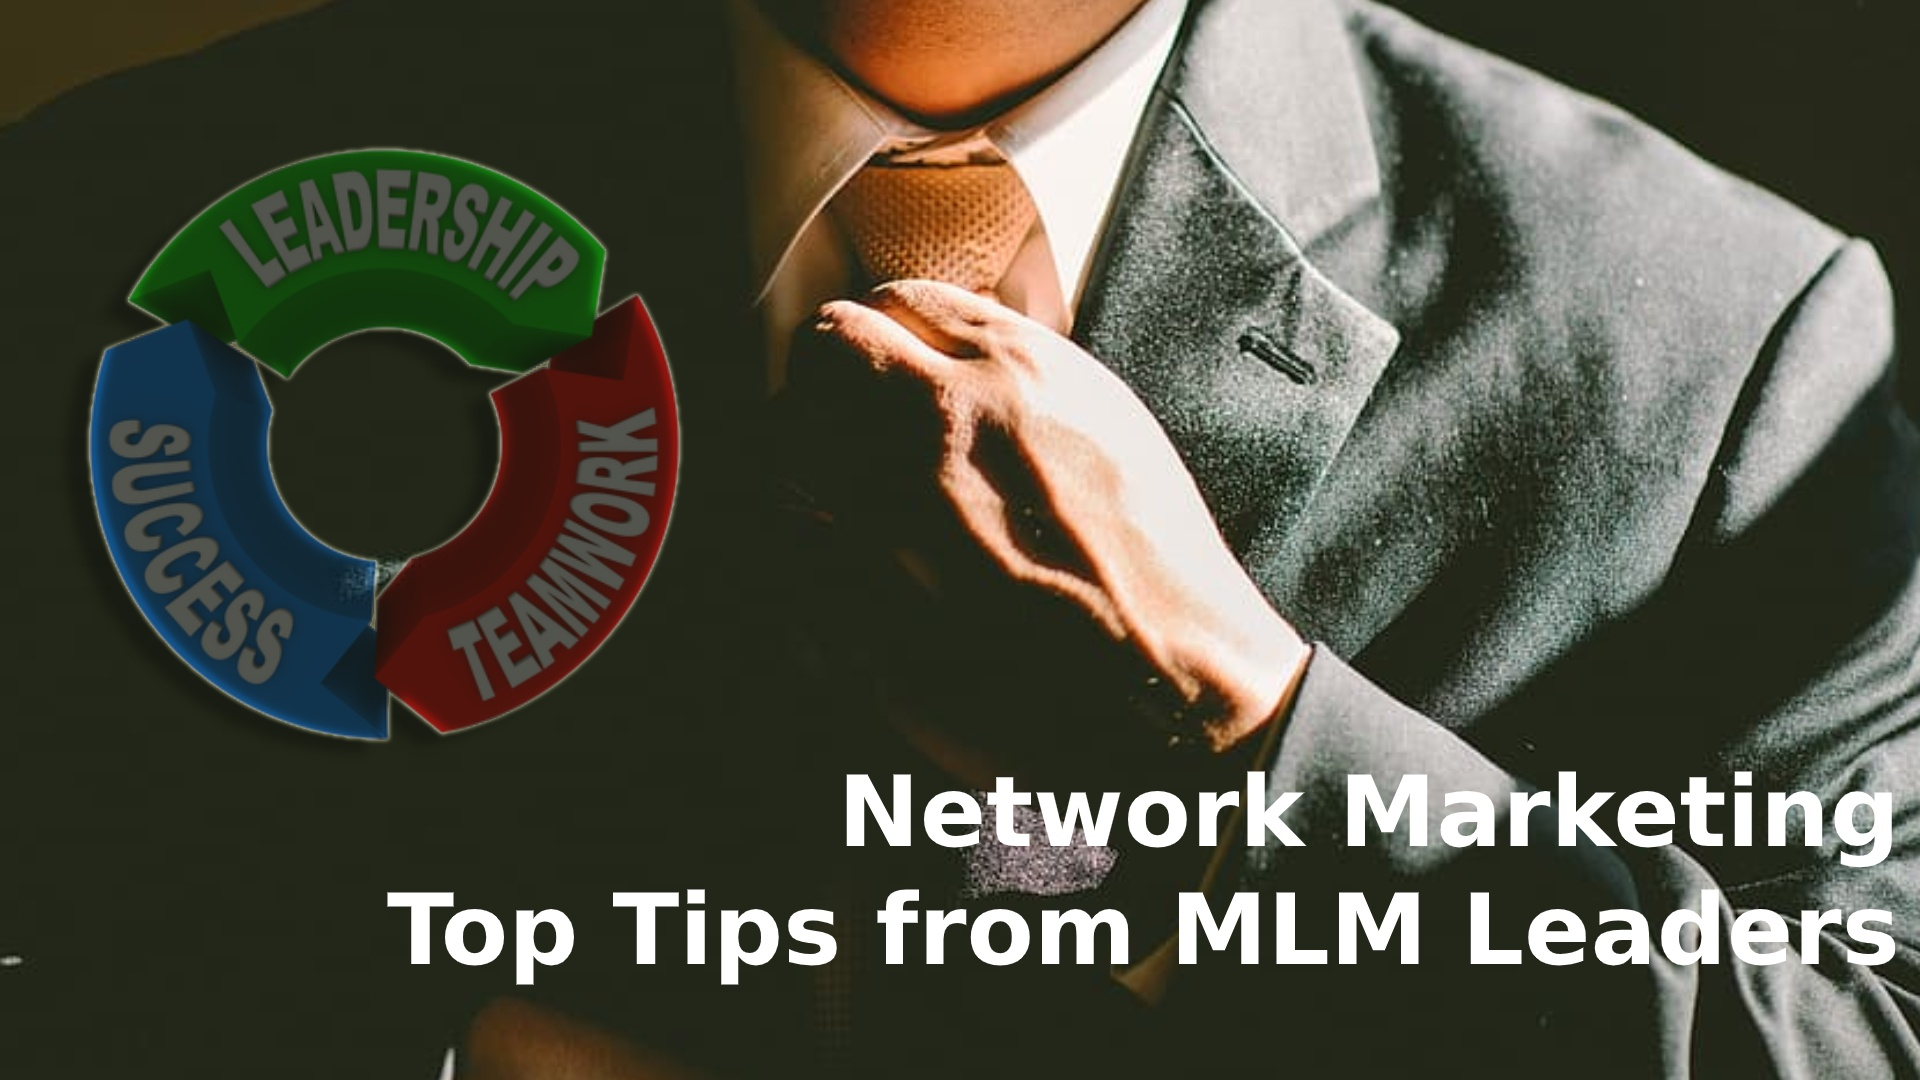 Network Marketing - Top Tips from MLM Leaders